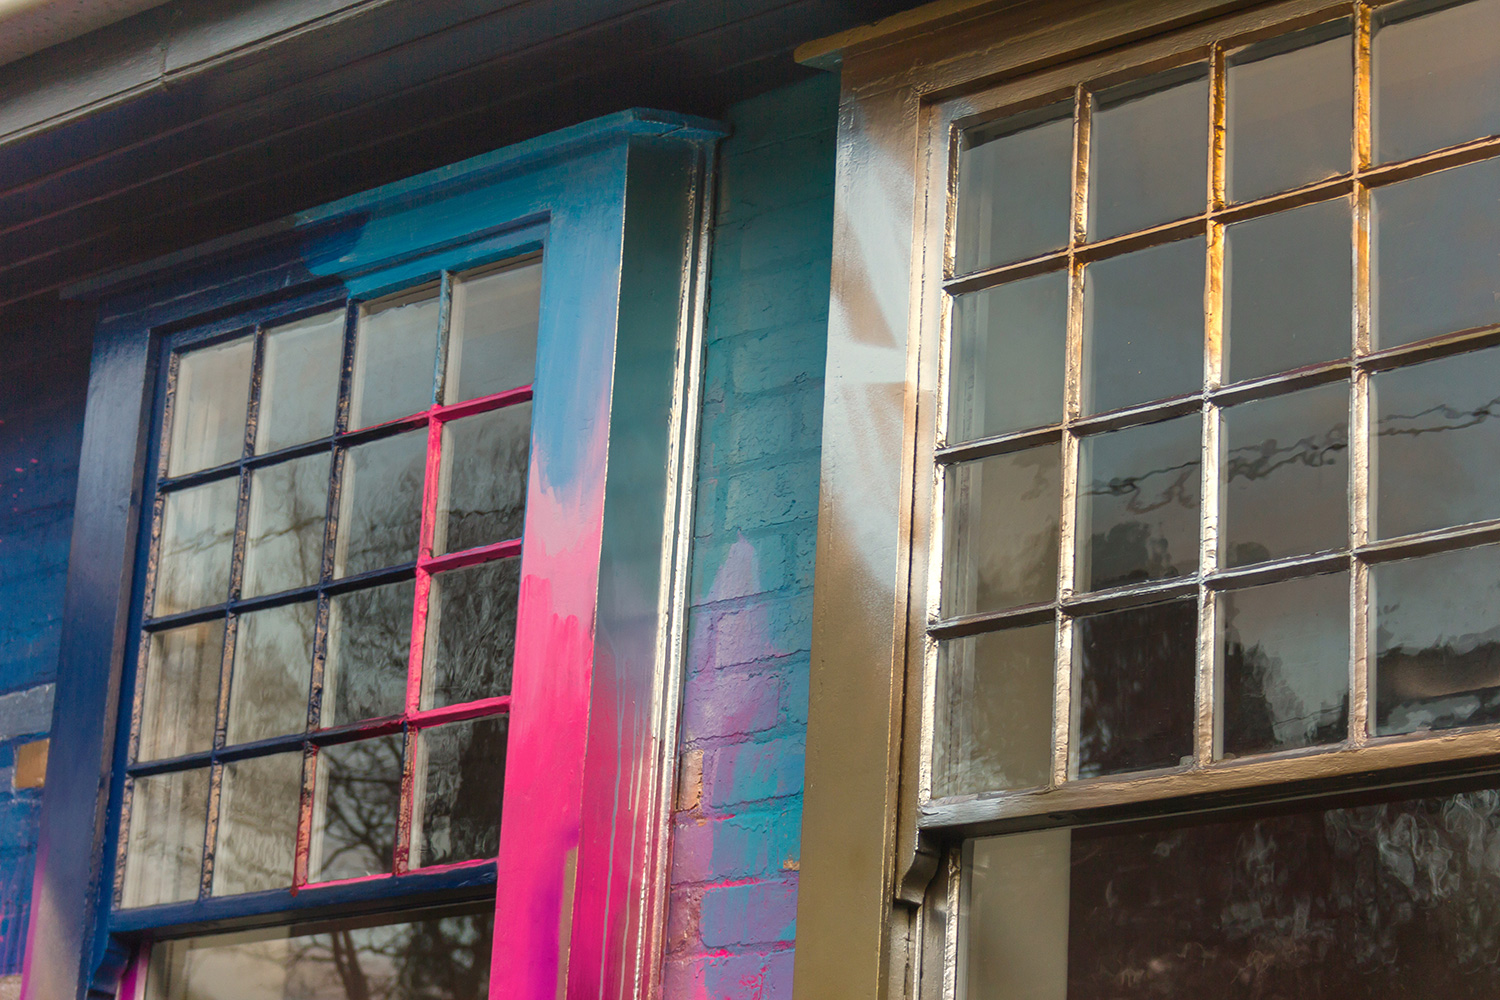 Close up of two windows that have been painted as part of a giant abstract installation on the outside of a residential property.